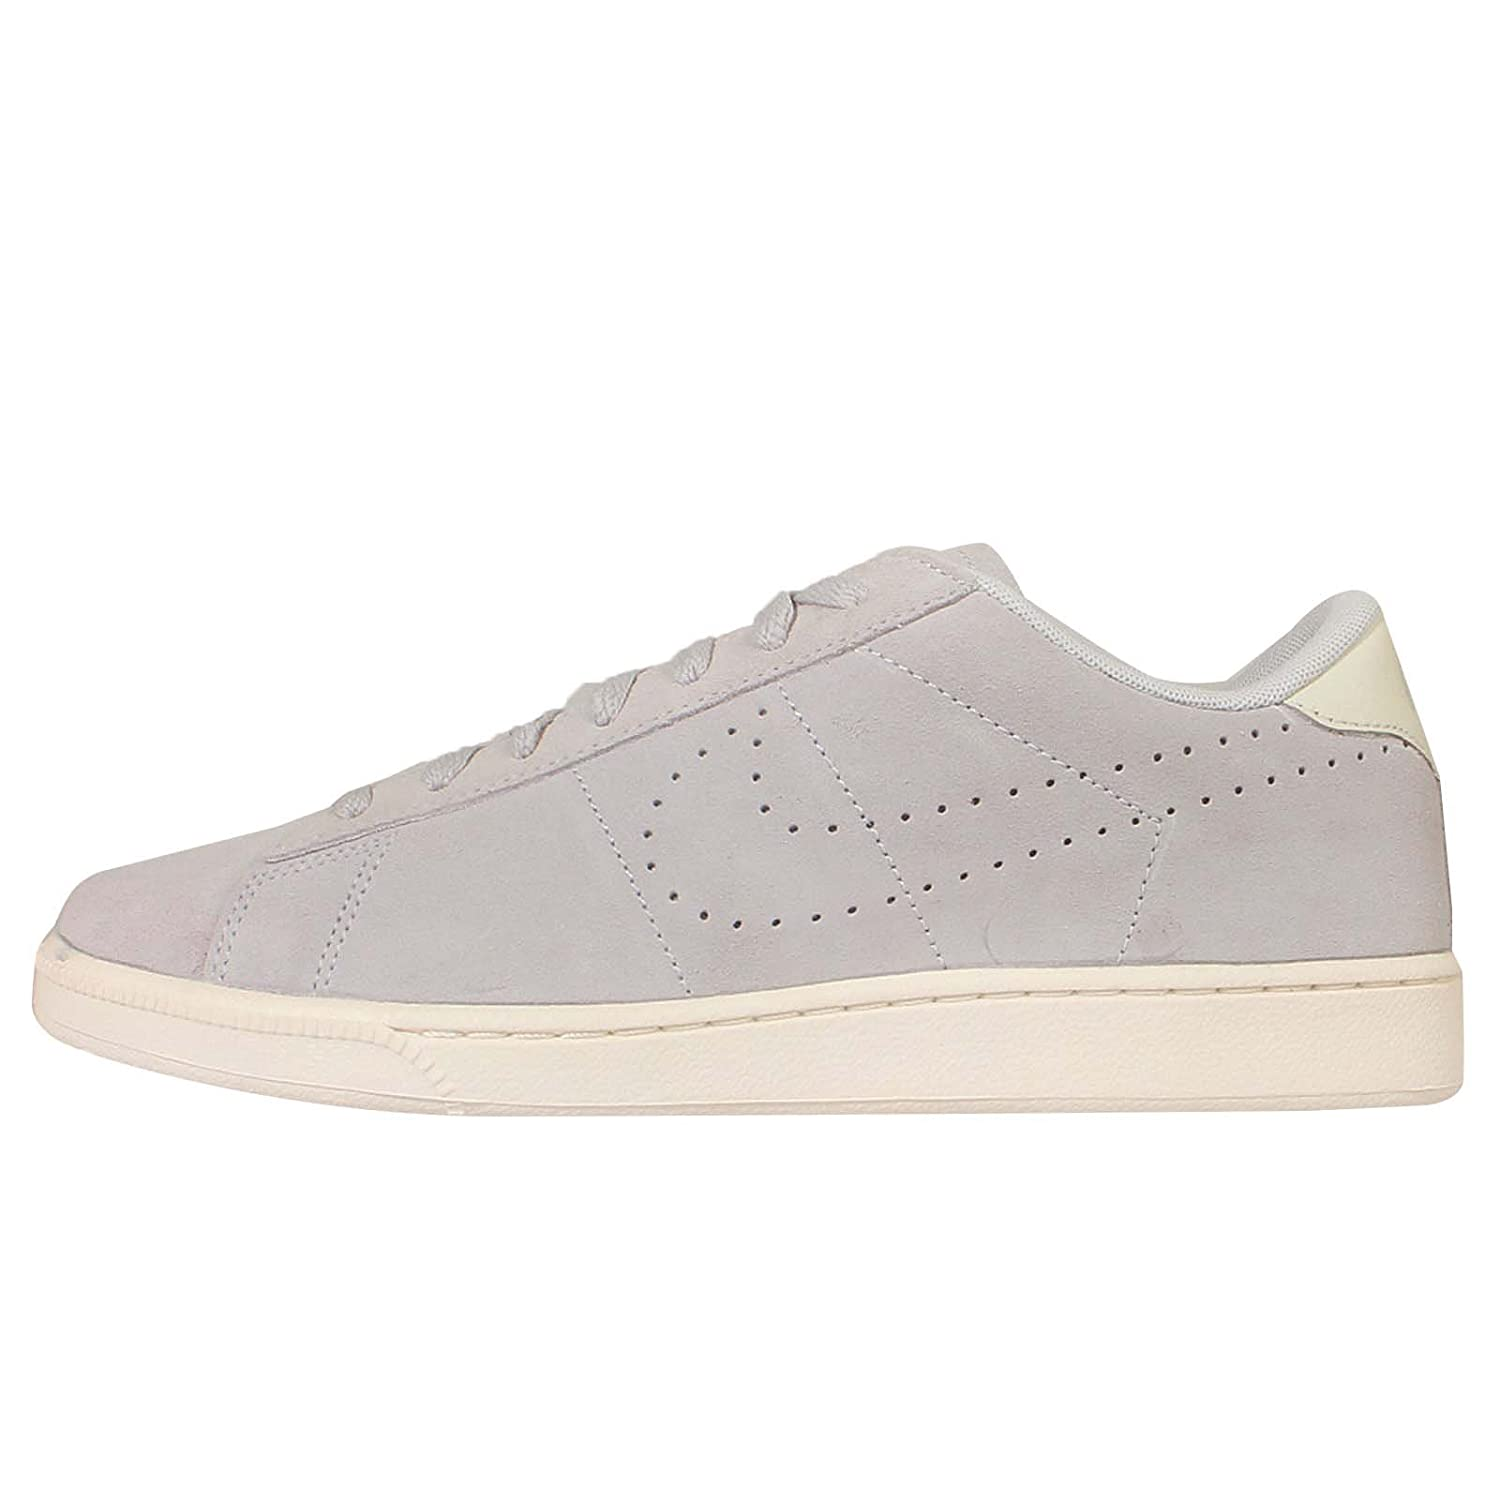 first rate 44a38 f6ee8 Nike Tennis Classic CS Suede mens Trainers 829351 Sneakers Shoes (us 11,  metallic platinum.